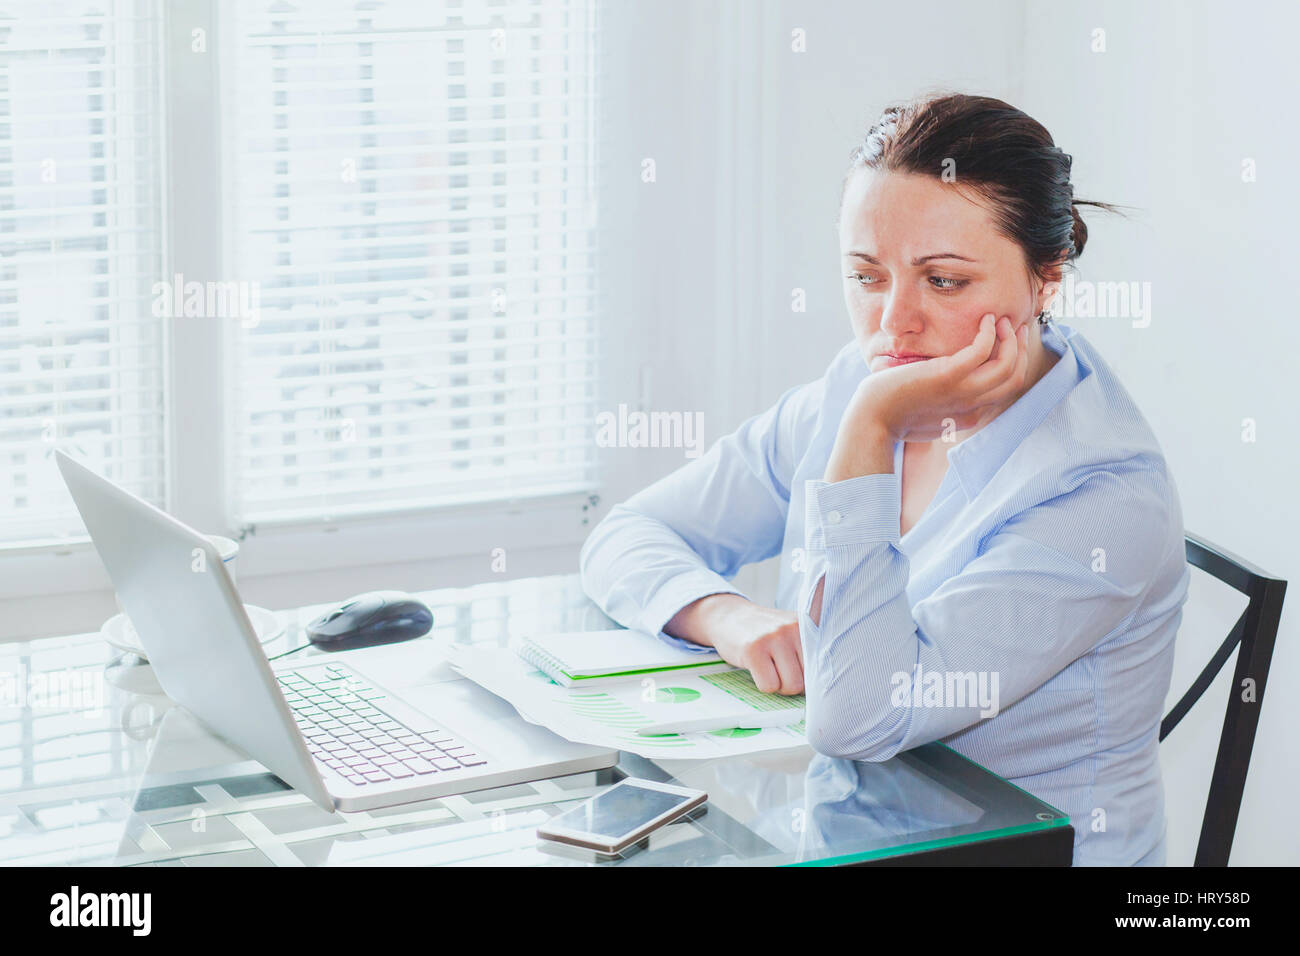 doubt concept, difficult job, business woman in front of complex project with big responsibility, scared uncertain - Stock Image